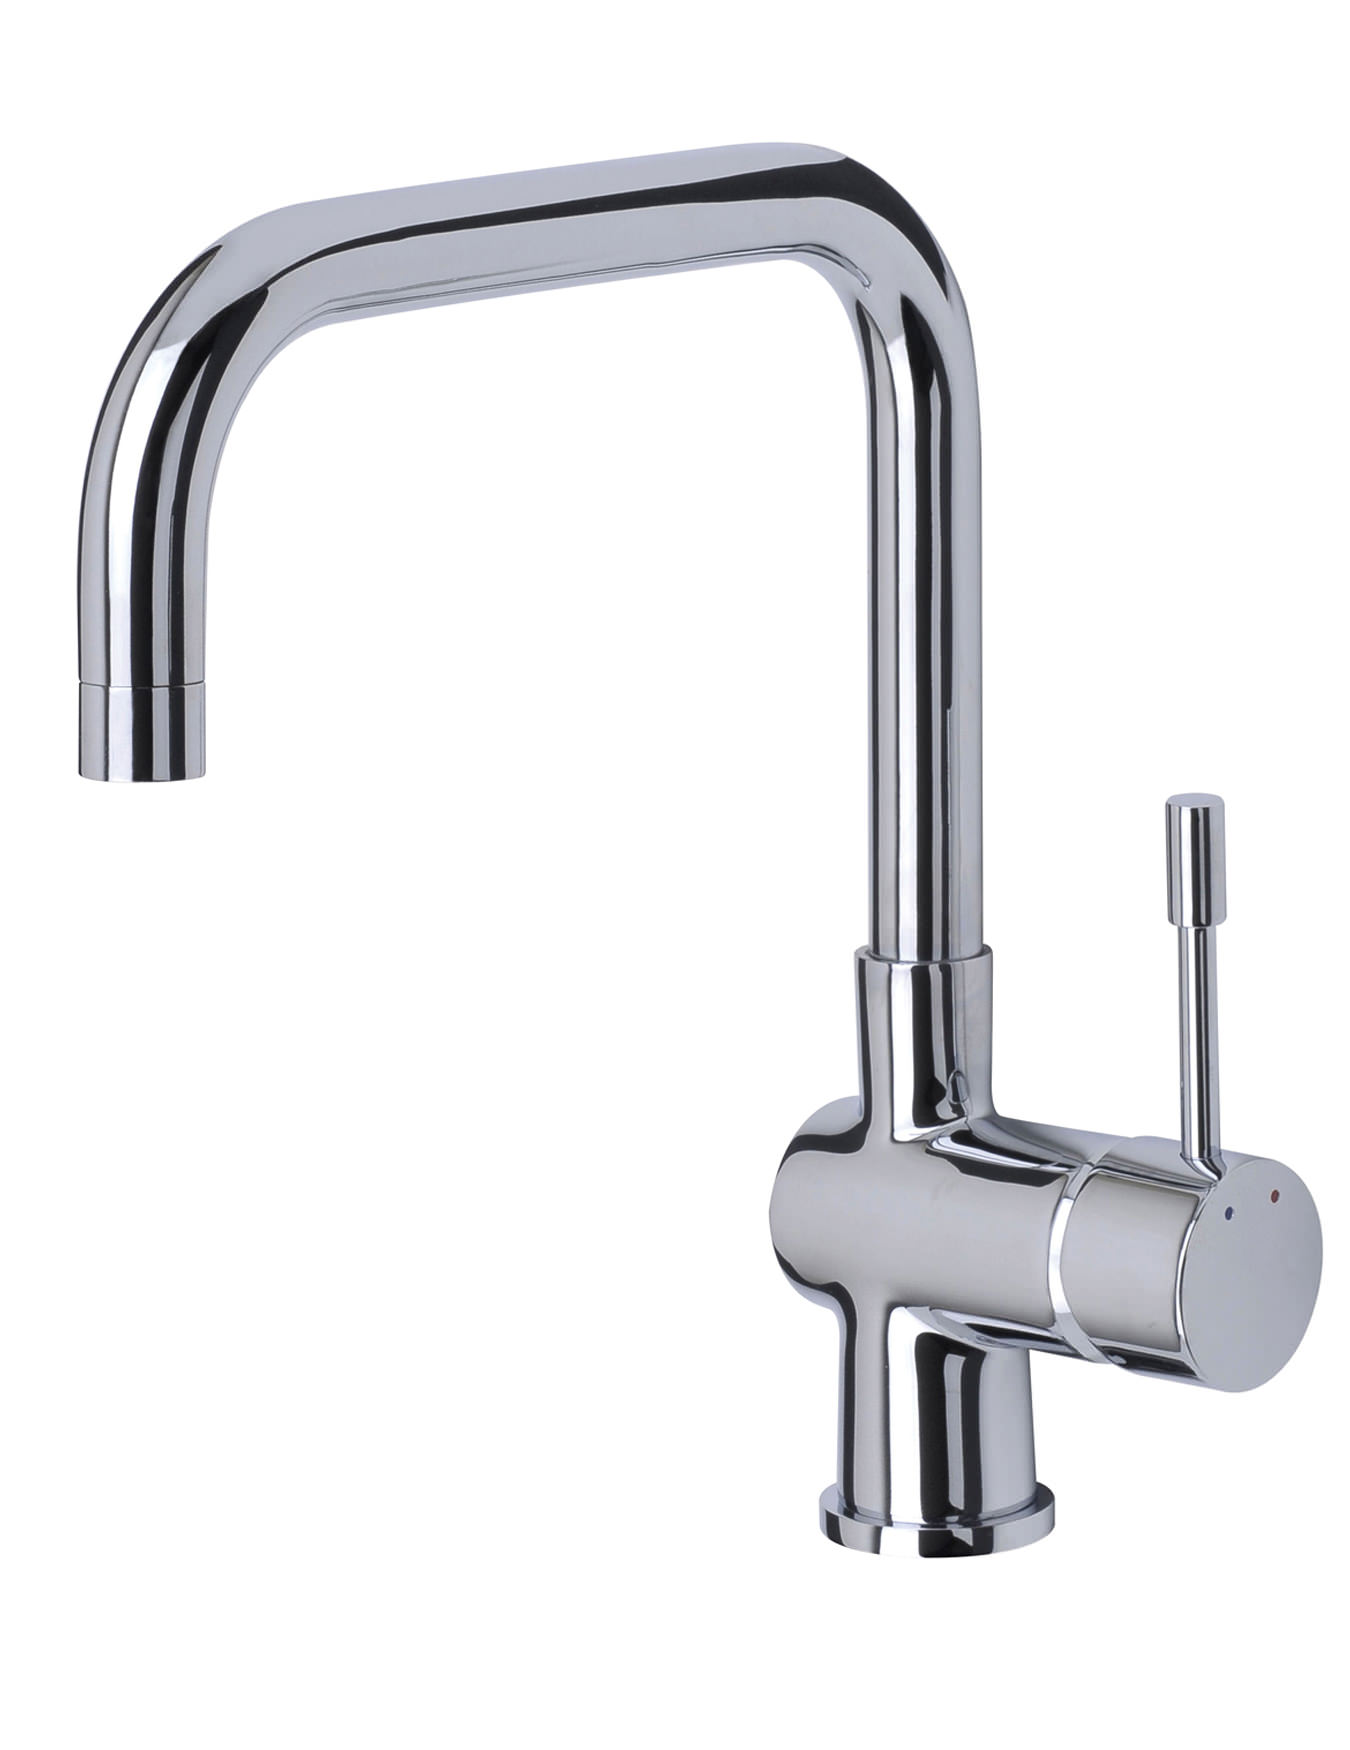 Mayfair Villa Kitchen Sink Mixer Tap Chrome - KIT157